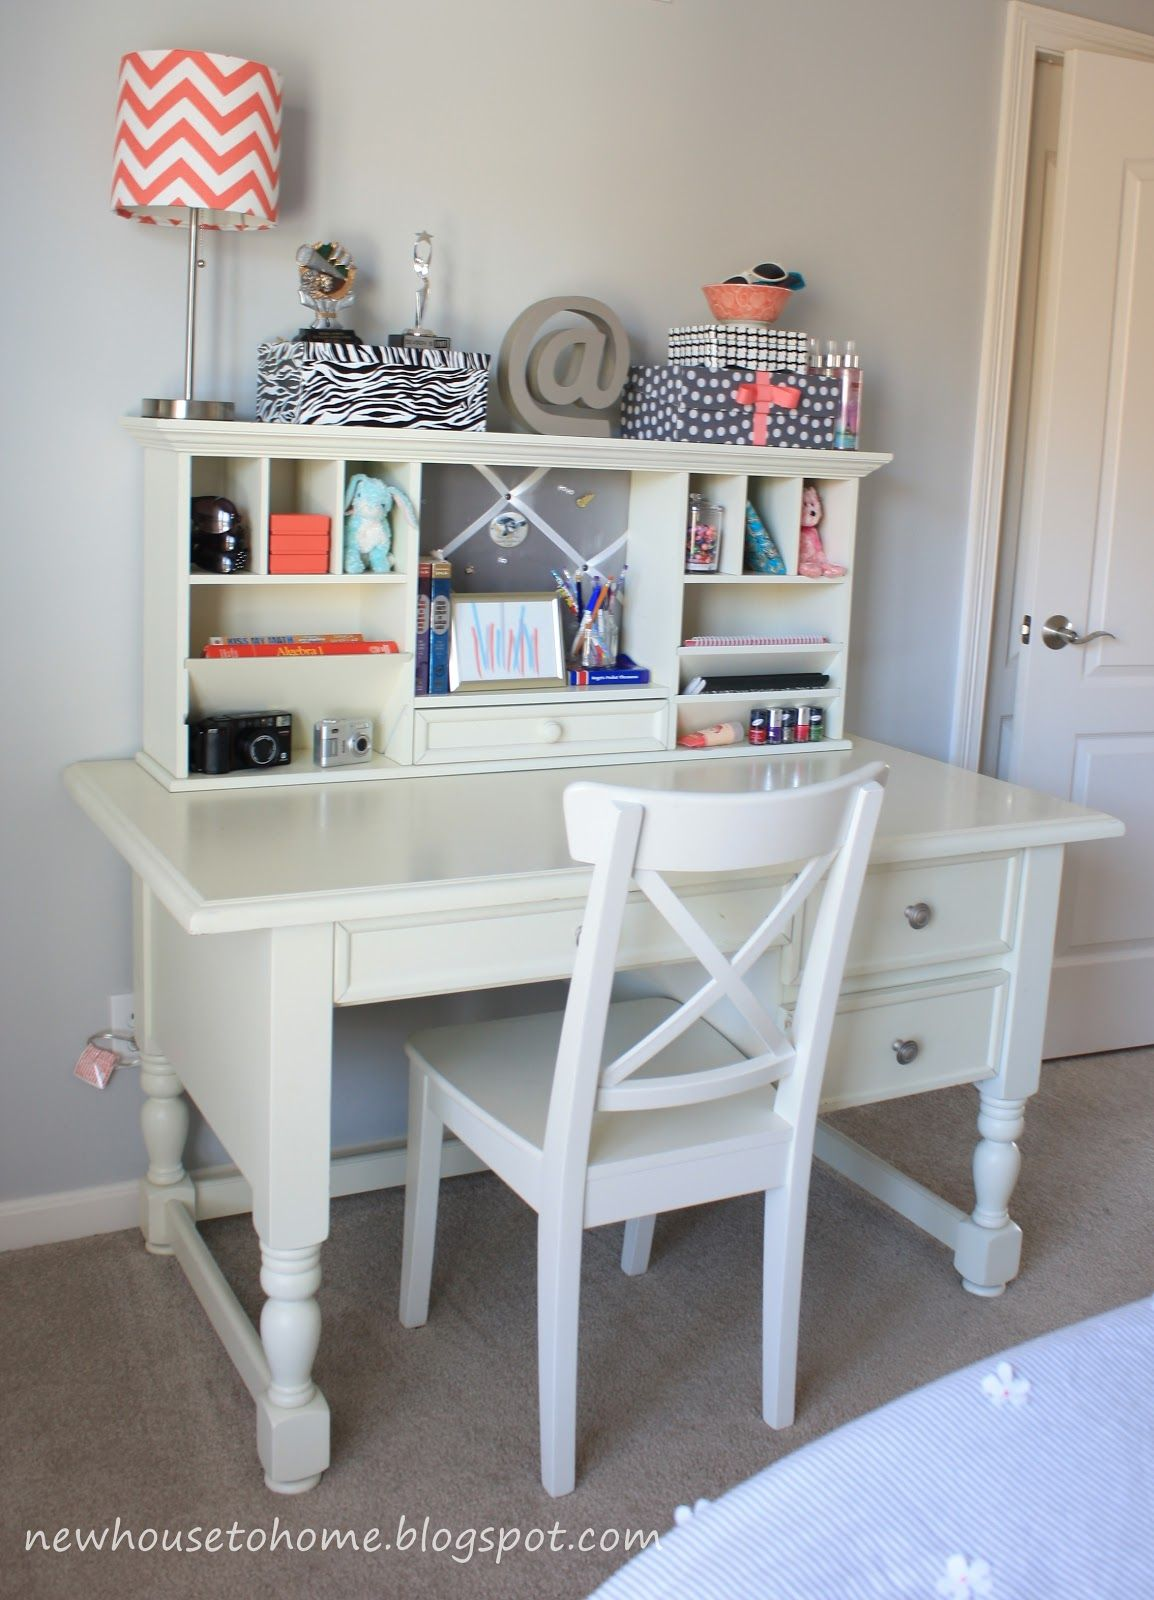 Desk For Girls Bedroom Desk For Girls Room  Every Teenage Girl Needs A Place To Be